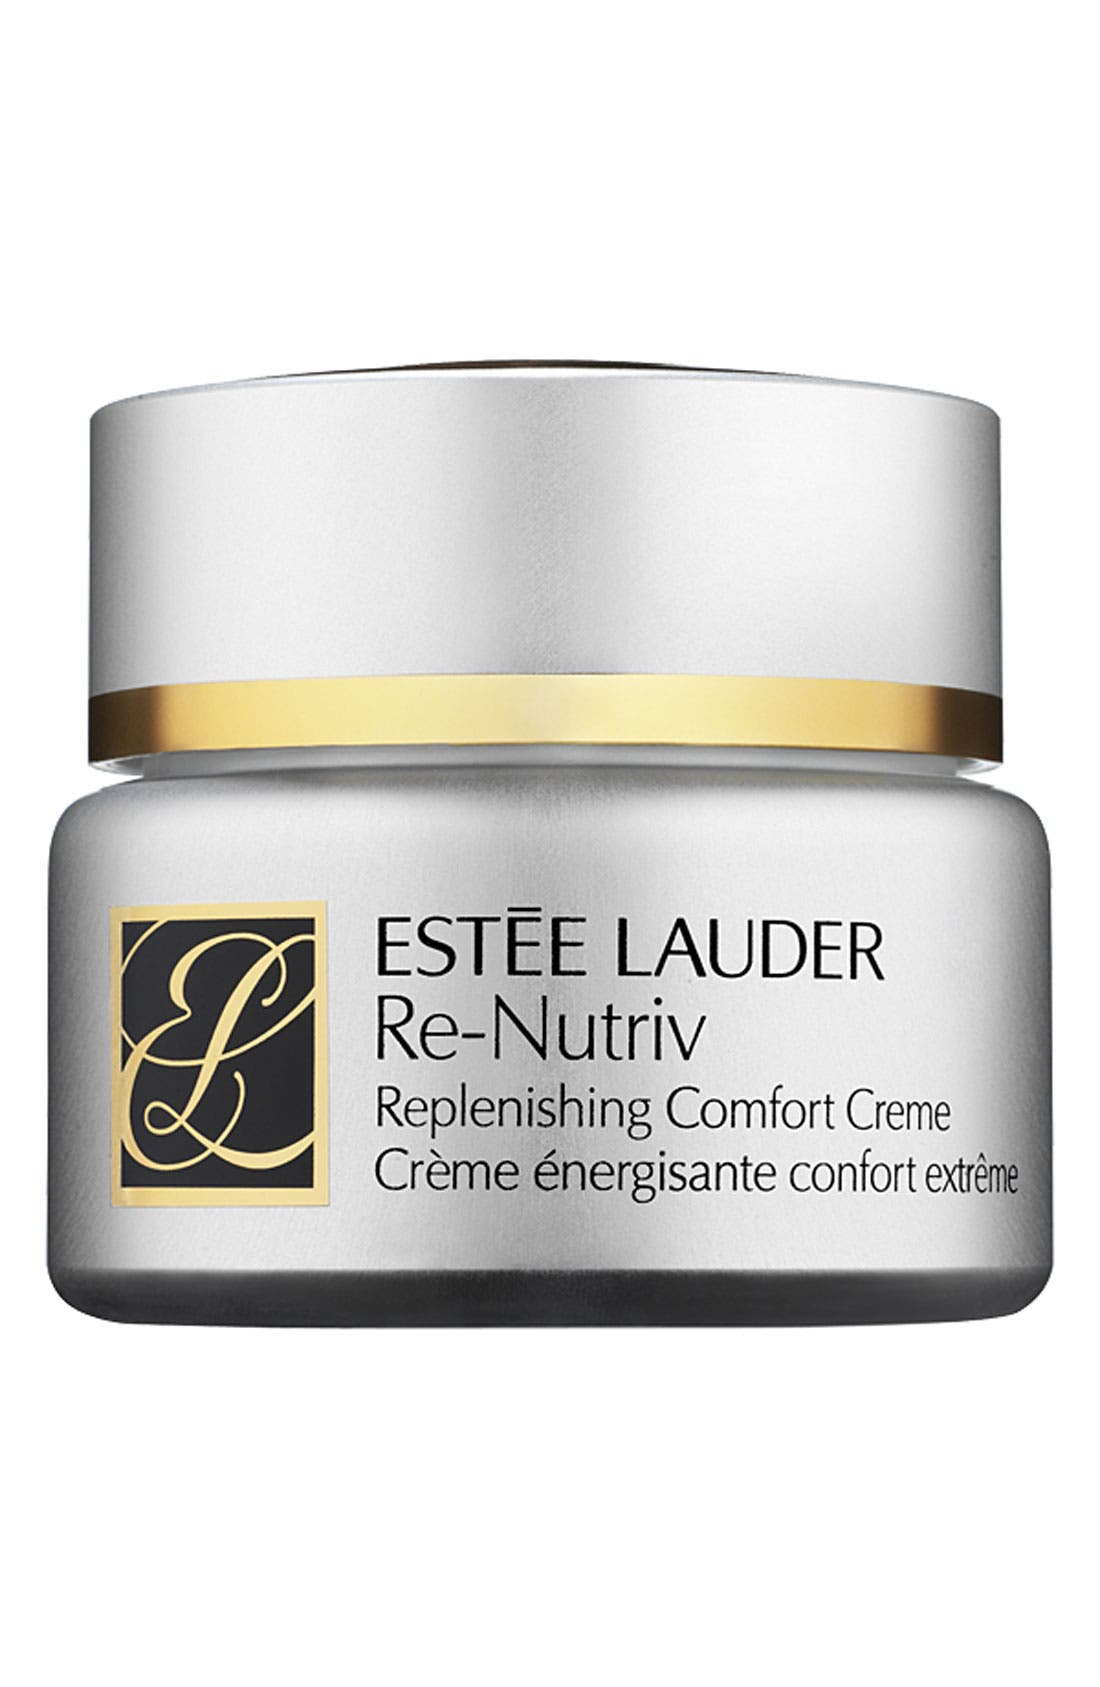 Re-Nutriv Replenishing Comfort Crème,                             Main thumbnail 1, color,                             000